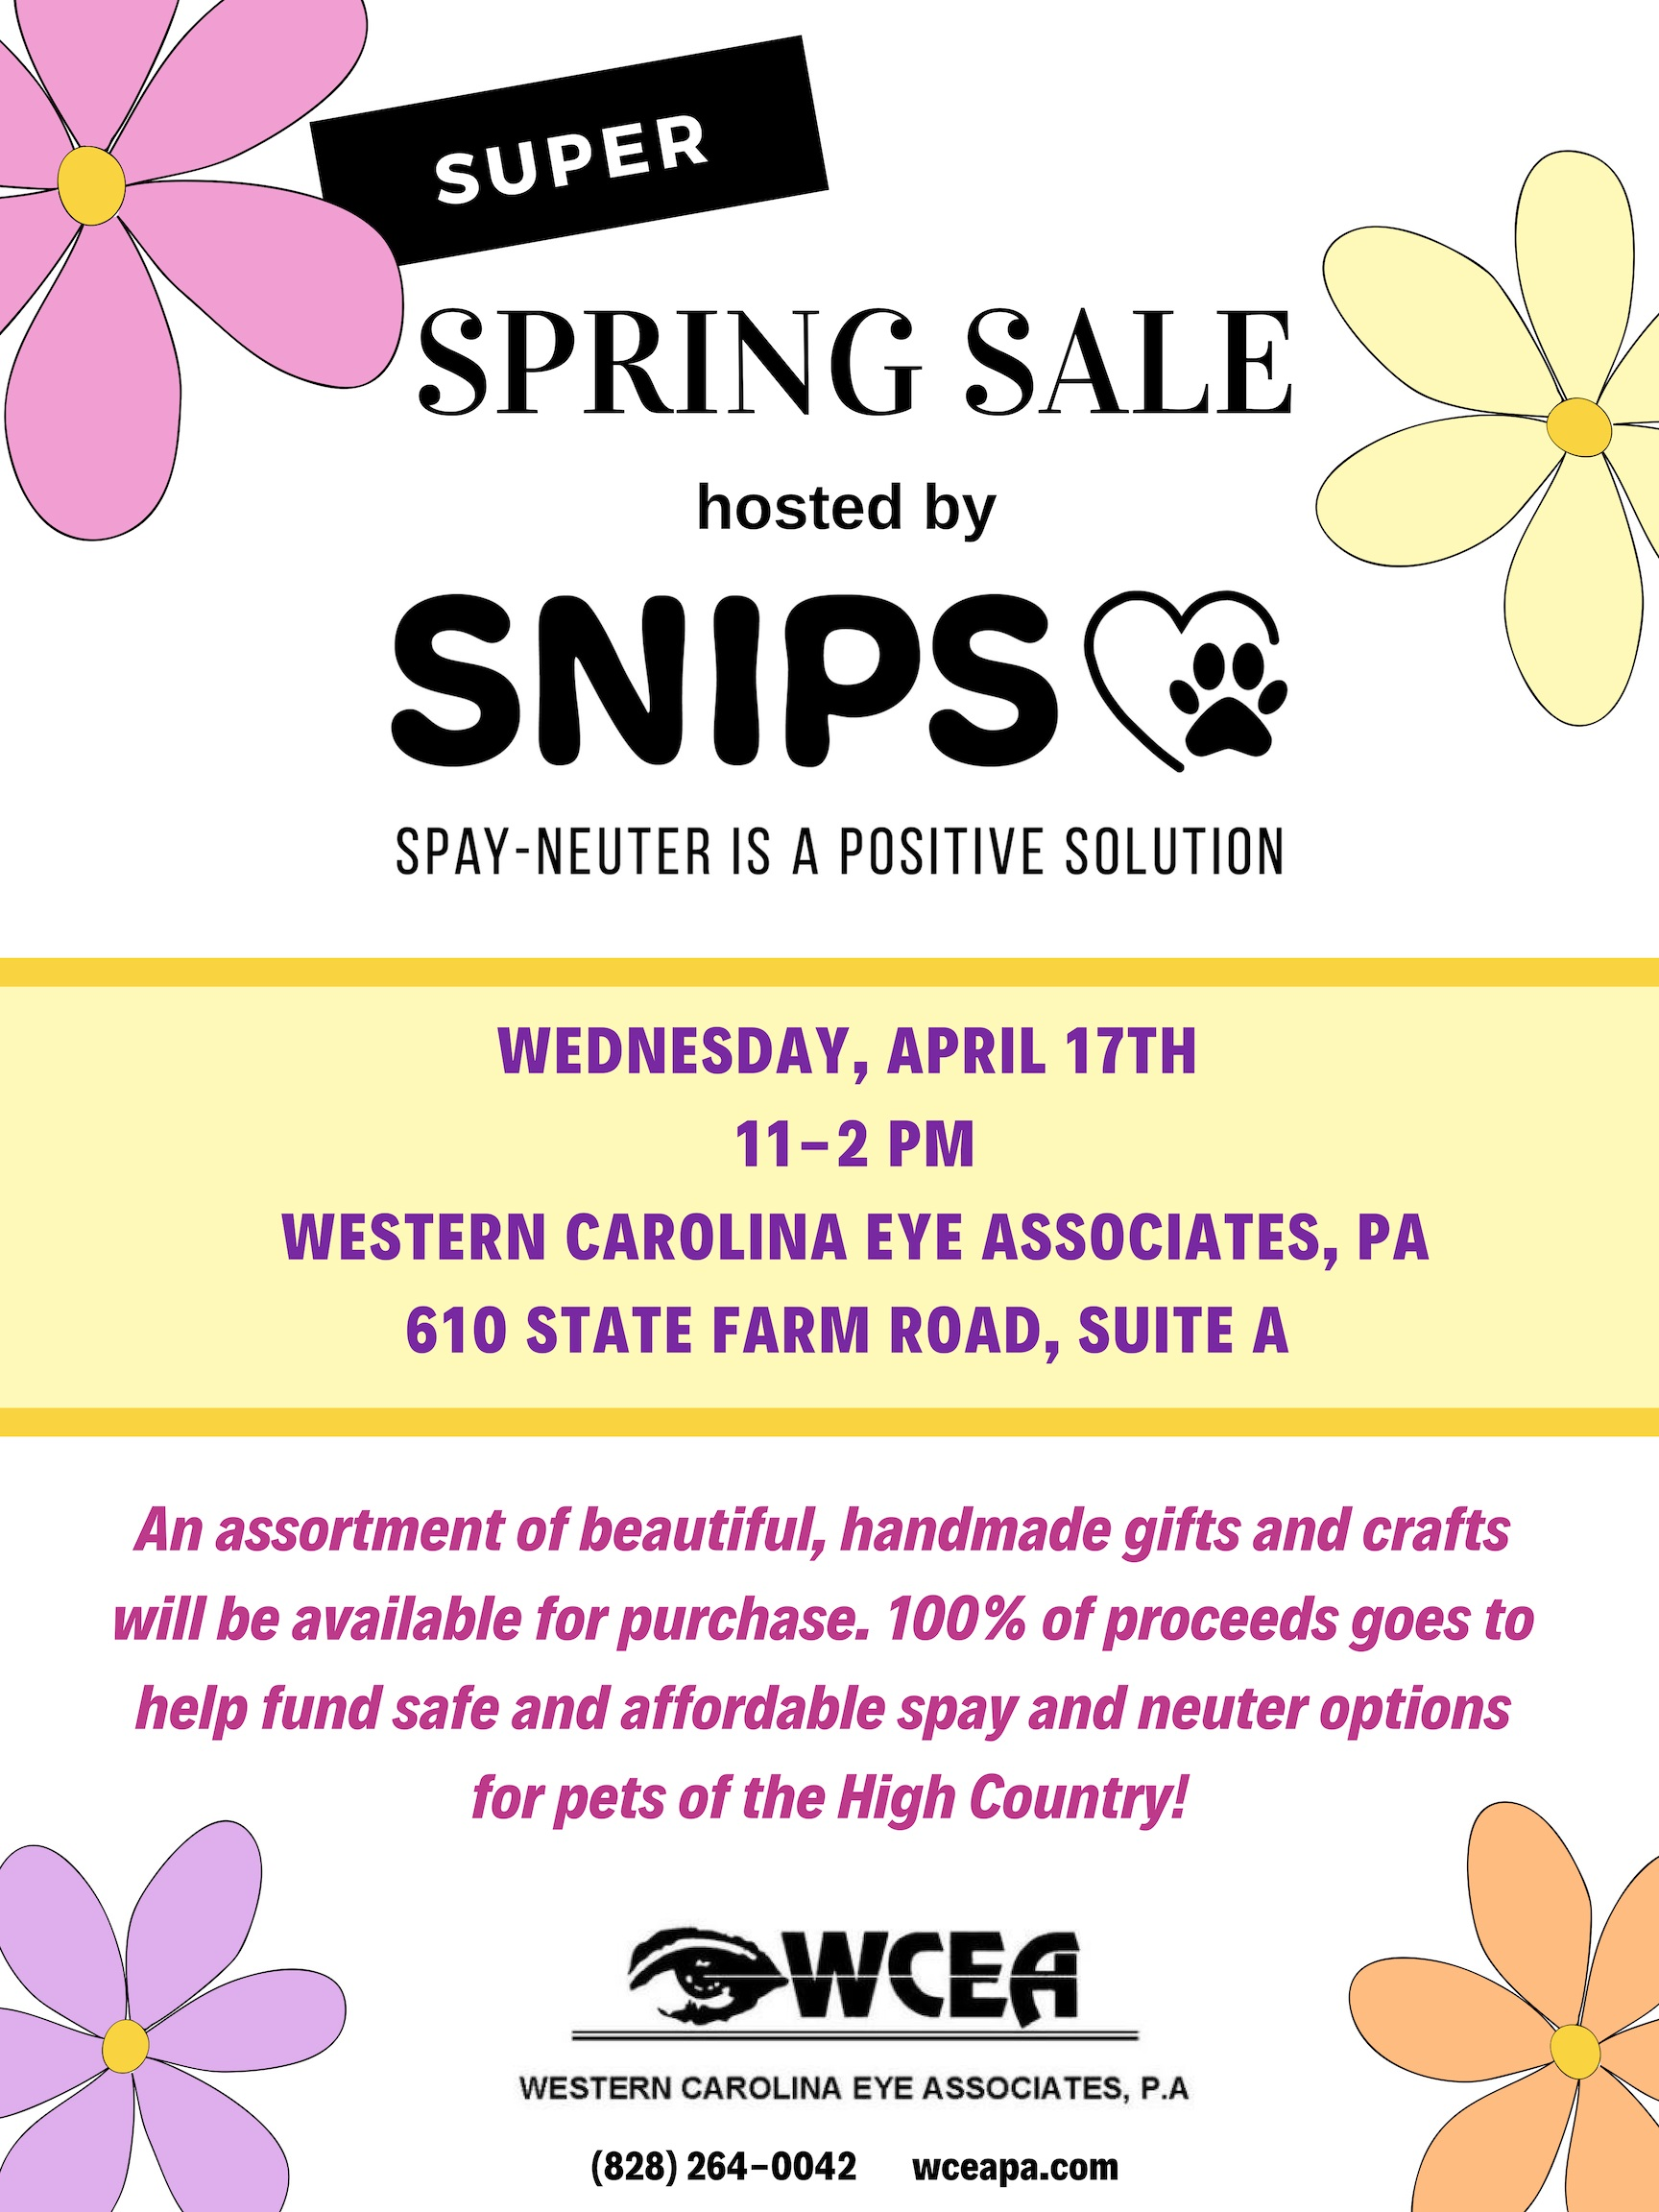 SNIPS Easter Sale Flyer.jpg